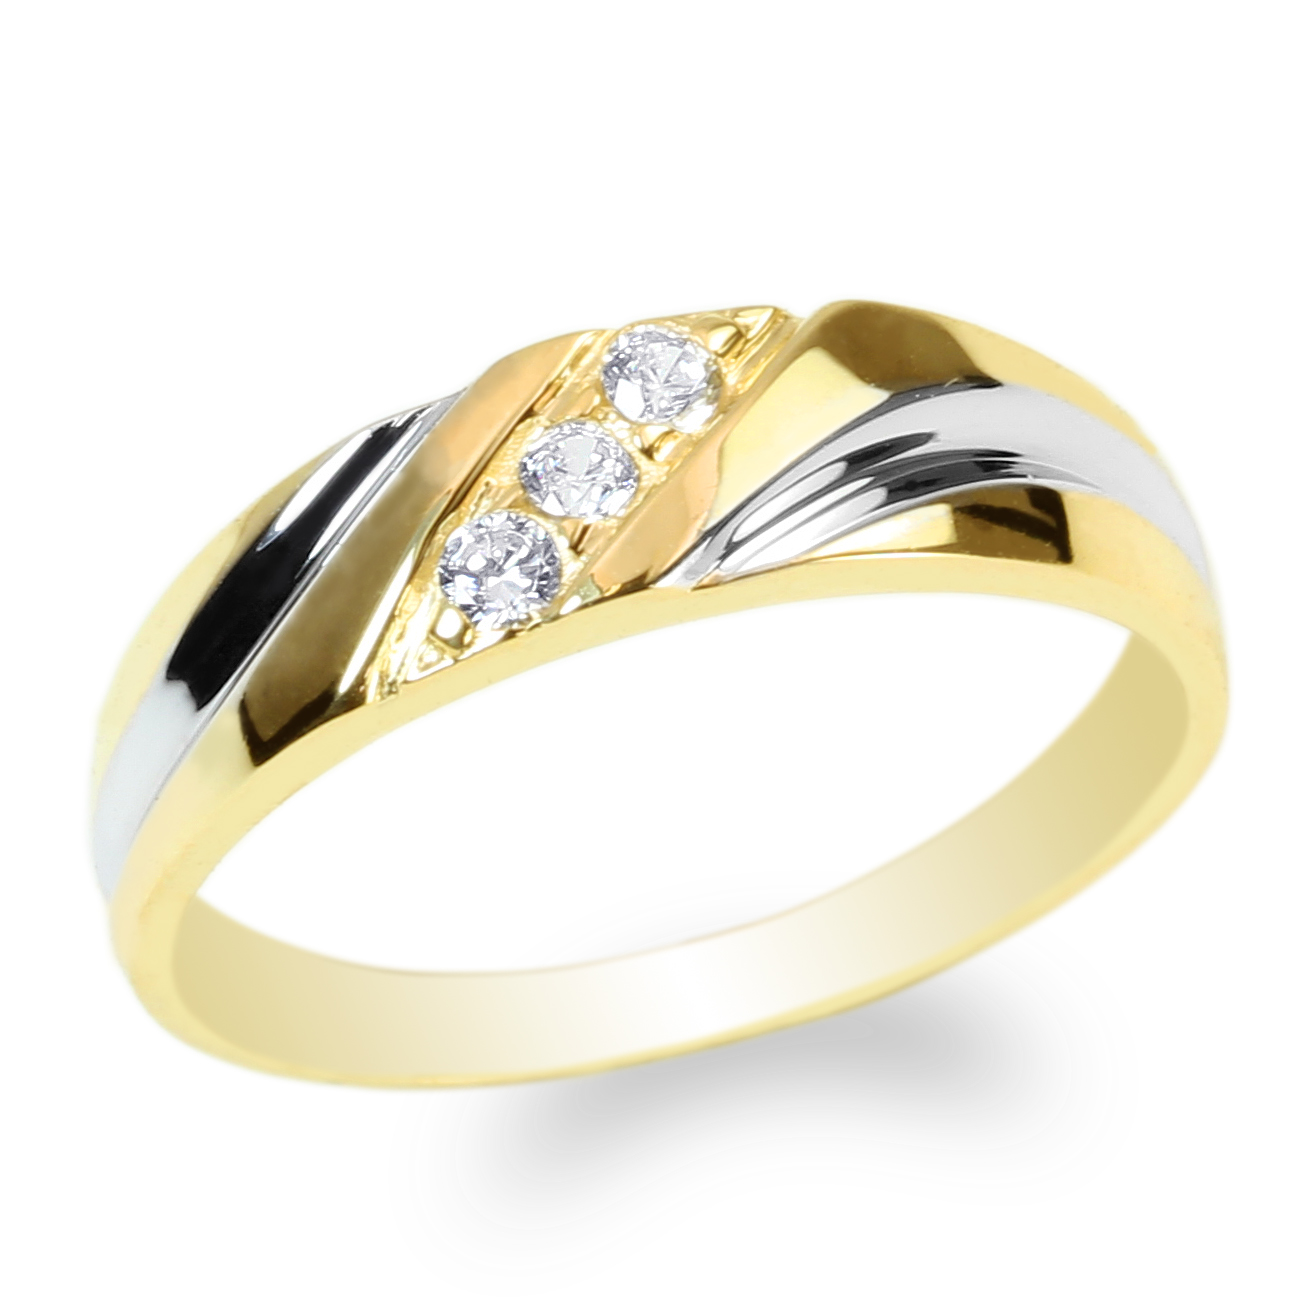 JamesJenny Ladies 14K Yellow Gold Round Cubic Zirconia Beautiful Two Tone Wedding Band Ring Size 4-10 by